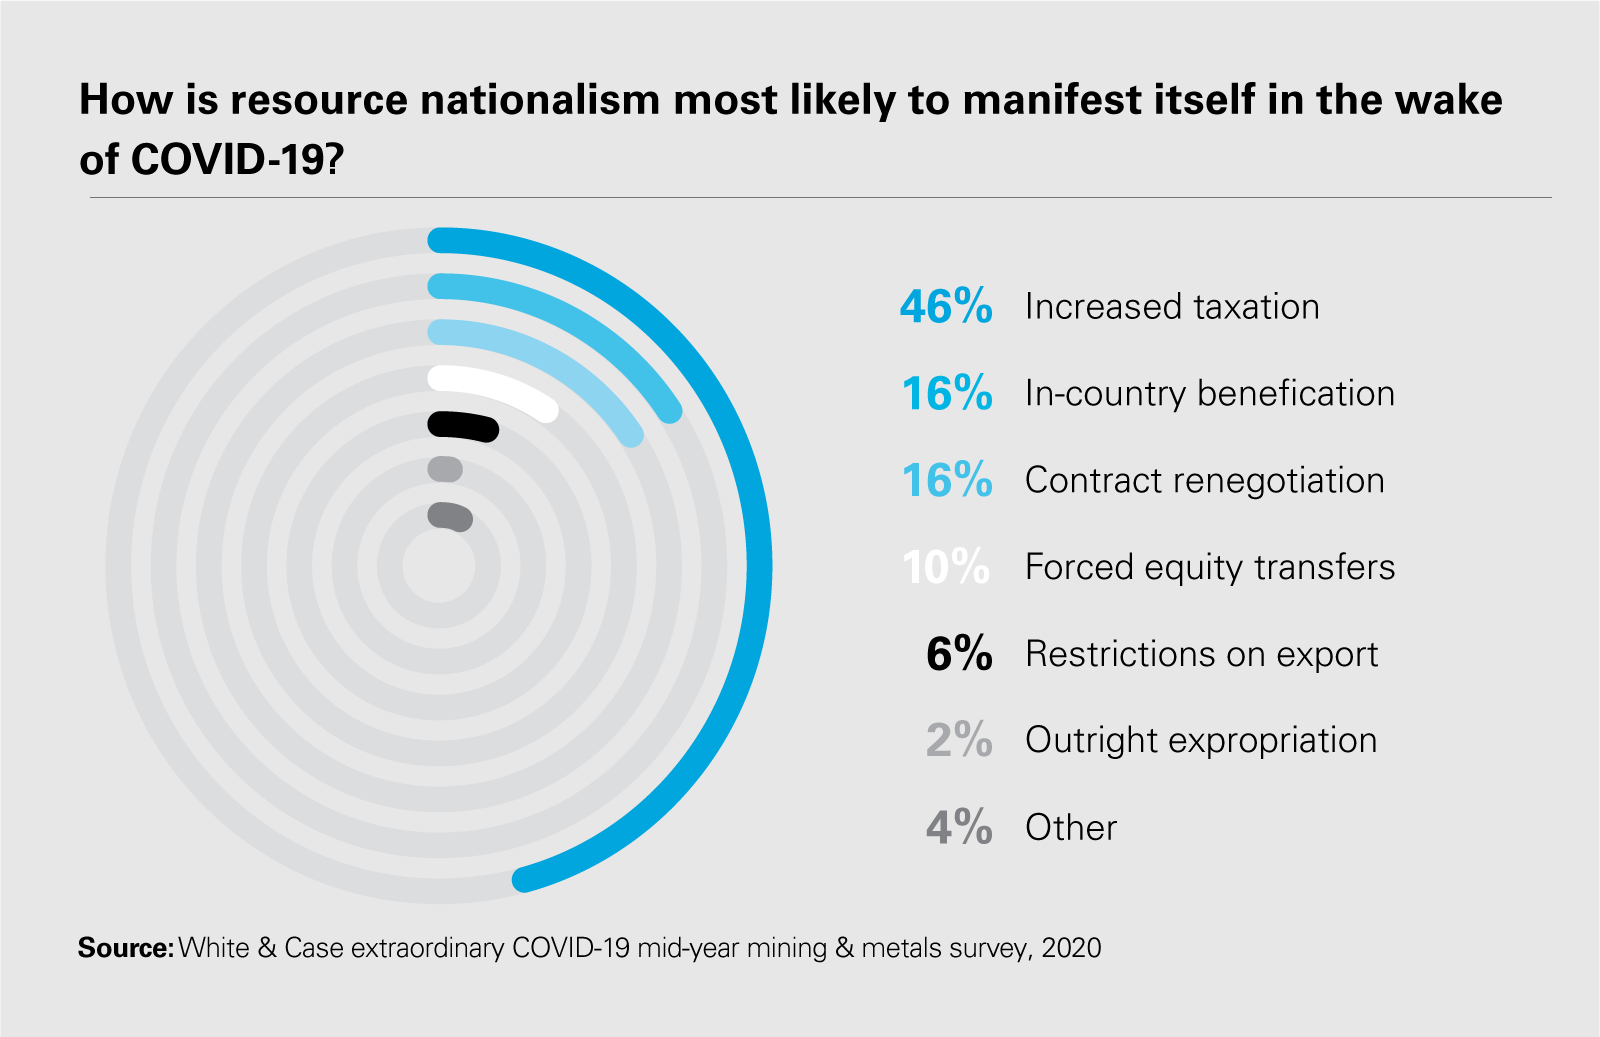 How is resource nationalism most likely to manifest itself in the wake of COVID-19?